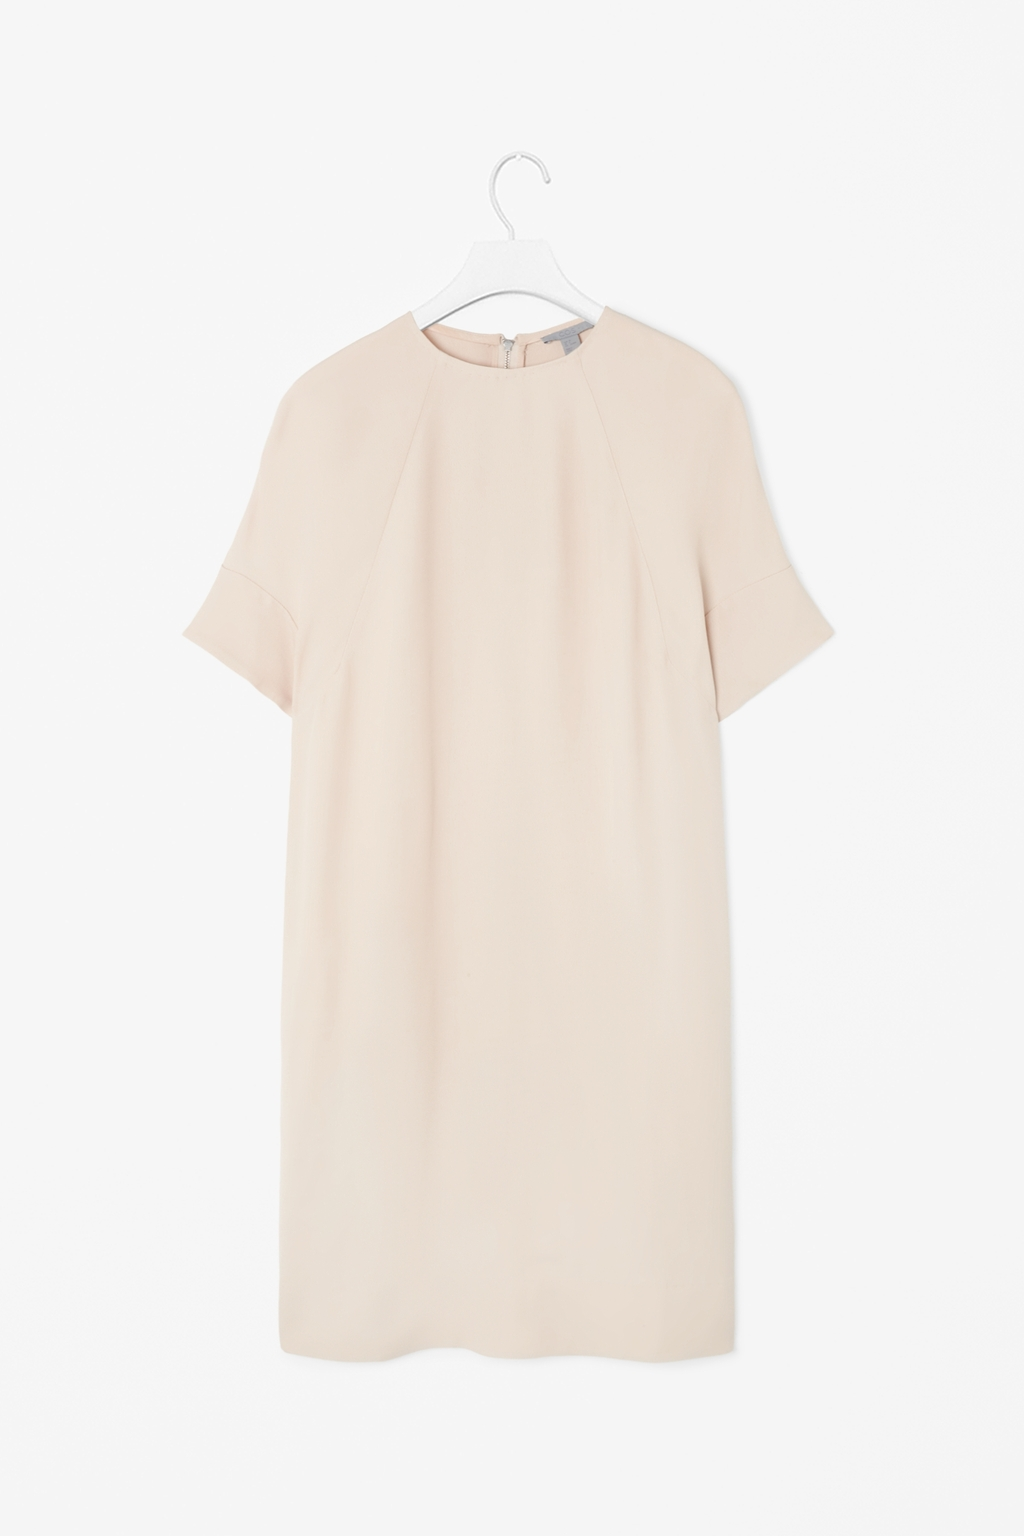 Rounded Shoulder Dress - style: t-shirt; fit: loose; pattern: plain; predominant colour: stone; occasions: casual, evening, creative work; length: just above the knee; fibres: viscose/rayon - 100%; neckline: crew; sleeve length: short sleeve; sleeve style: standard; texture group: crepes; pattern type: fabric; season: s/s 2014